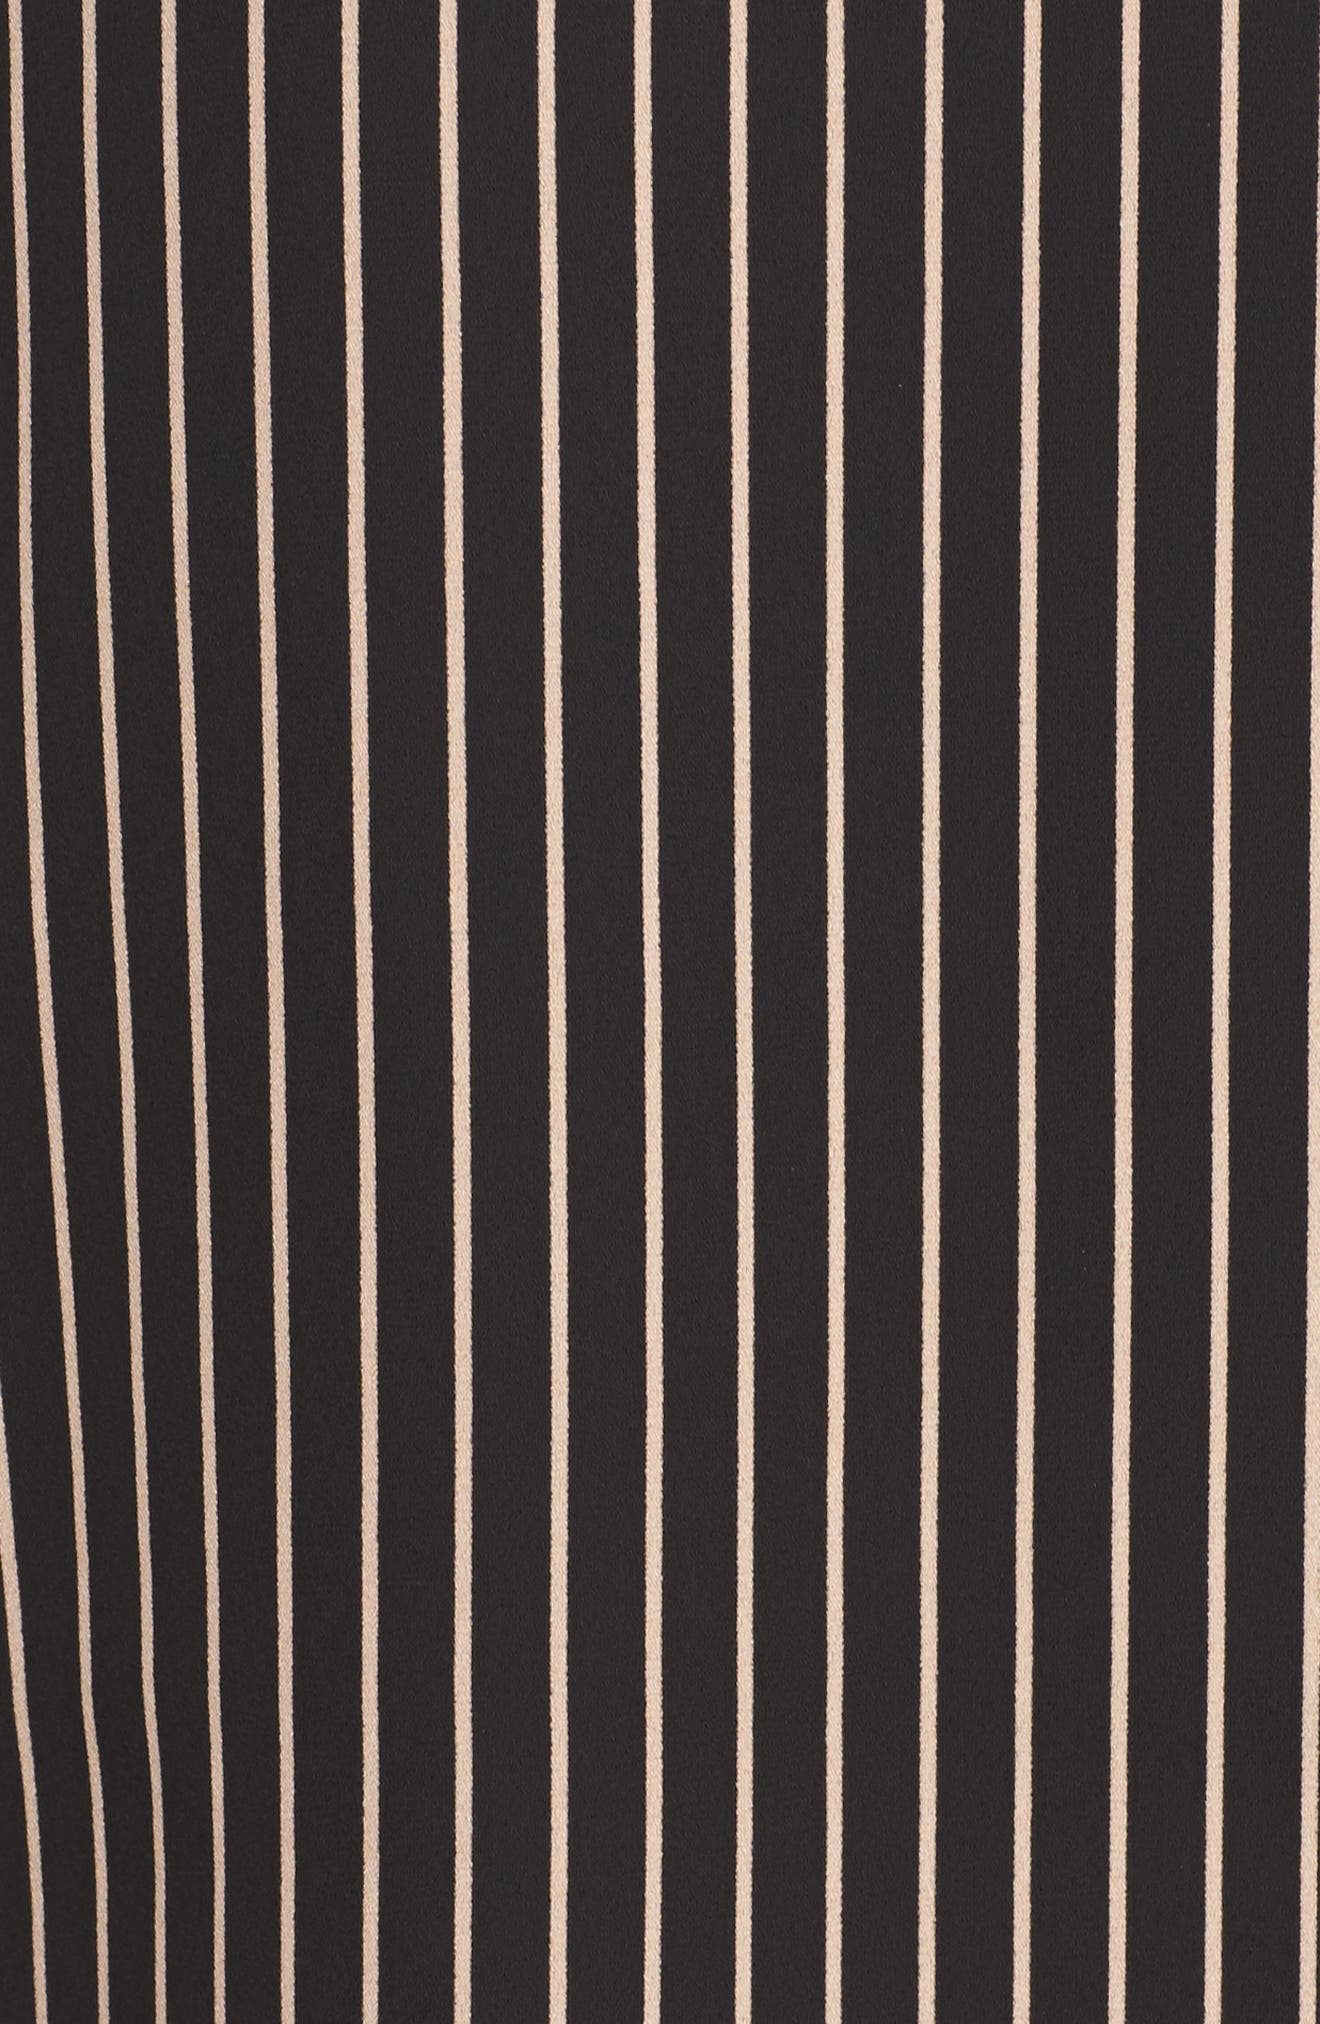 She-E-O Shift Dress,                             Alternate thumbnail 5, color,                             Black/ Tan Stripe